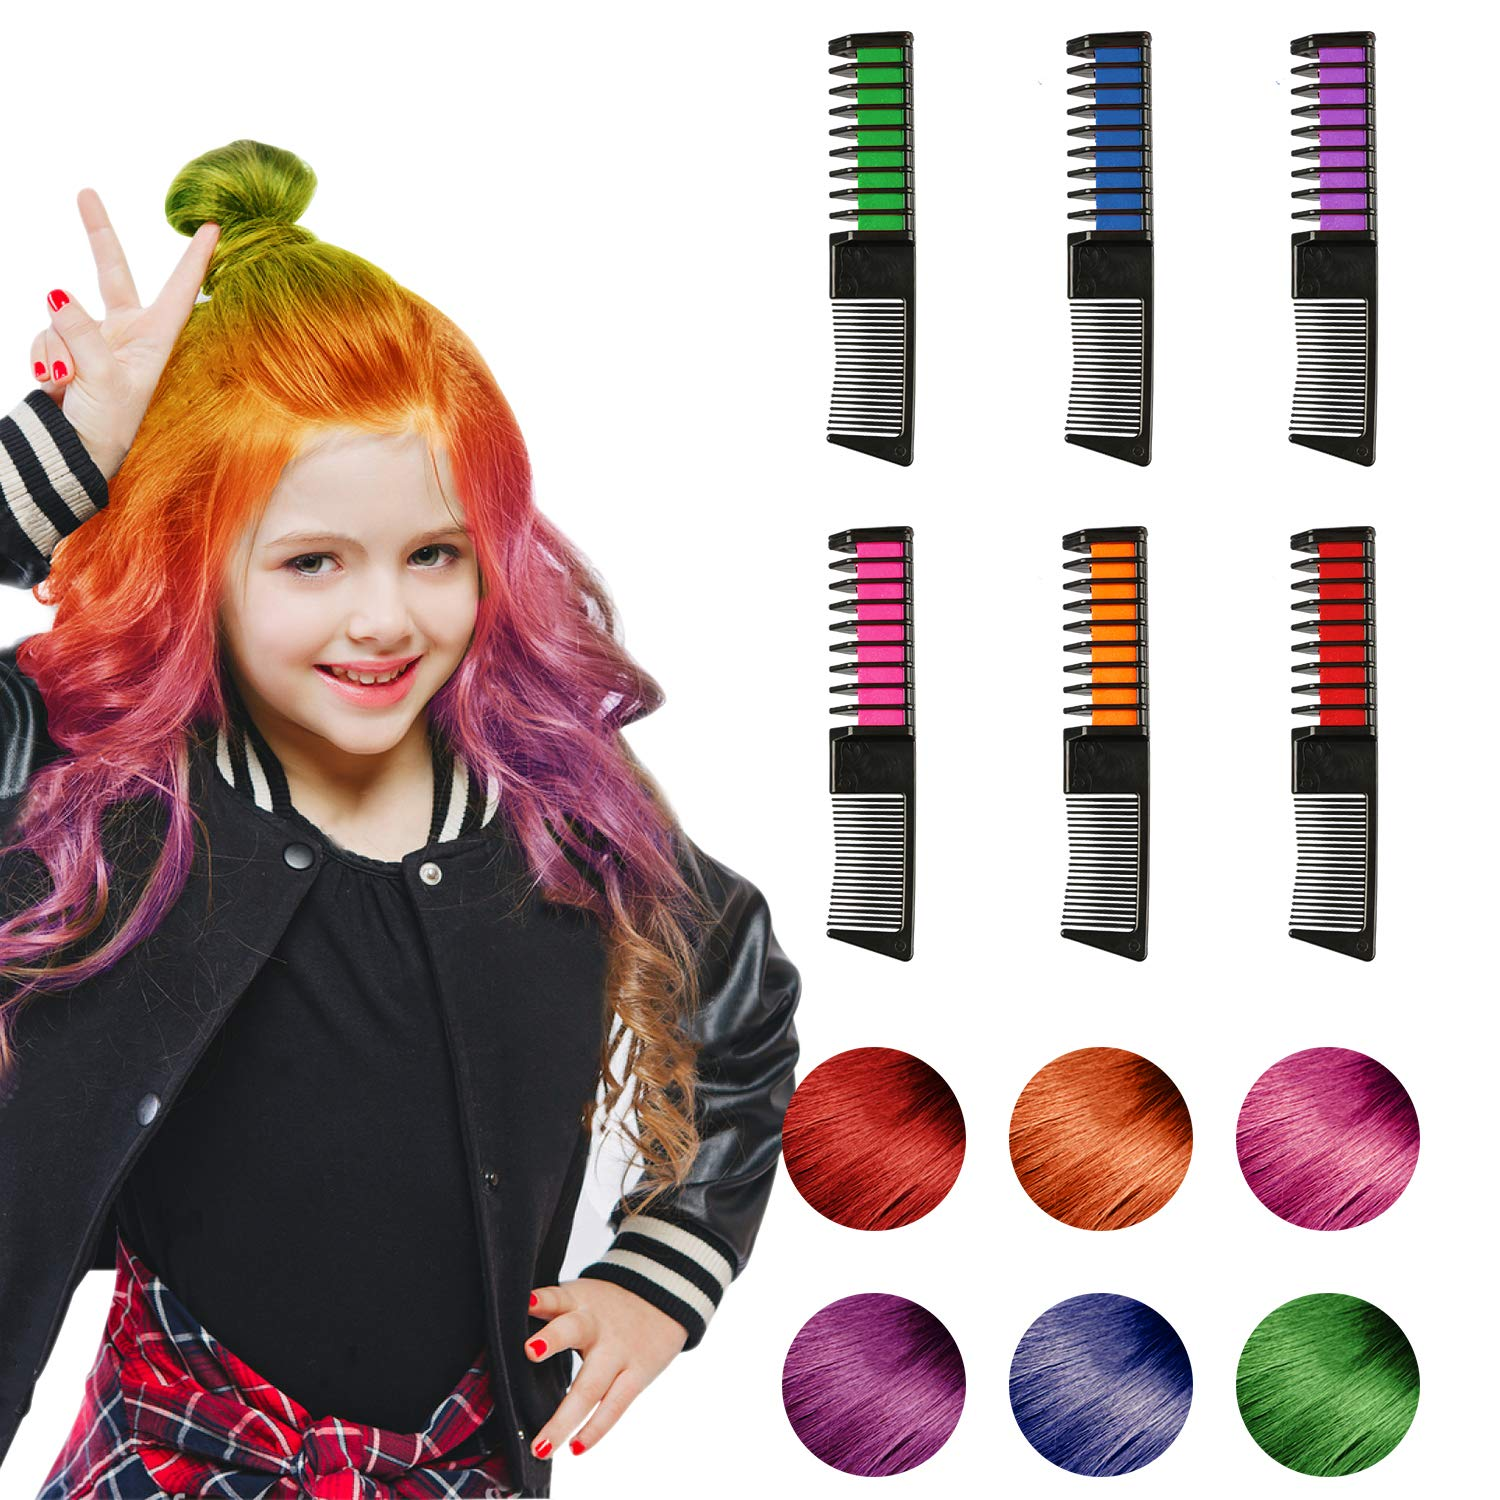 Hair Chalk, 10 Colors Hair Chalk Pens Set Non-toxic Washable Temporary Hair Dye for Kids Women And Teen- Best Birthday Christmas Halloween New Year Gifts for Girls Boys Tencoz RLAX34M65317G